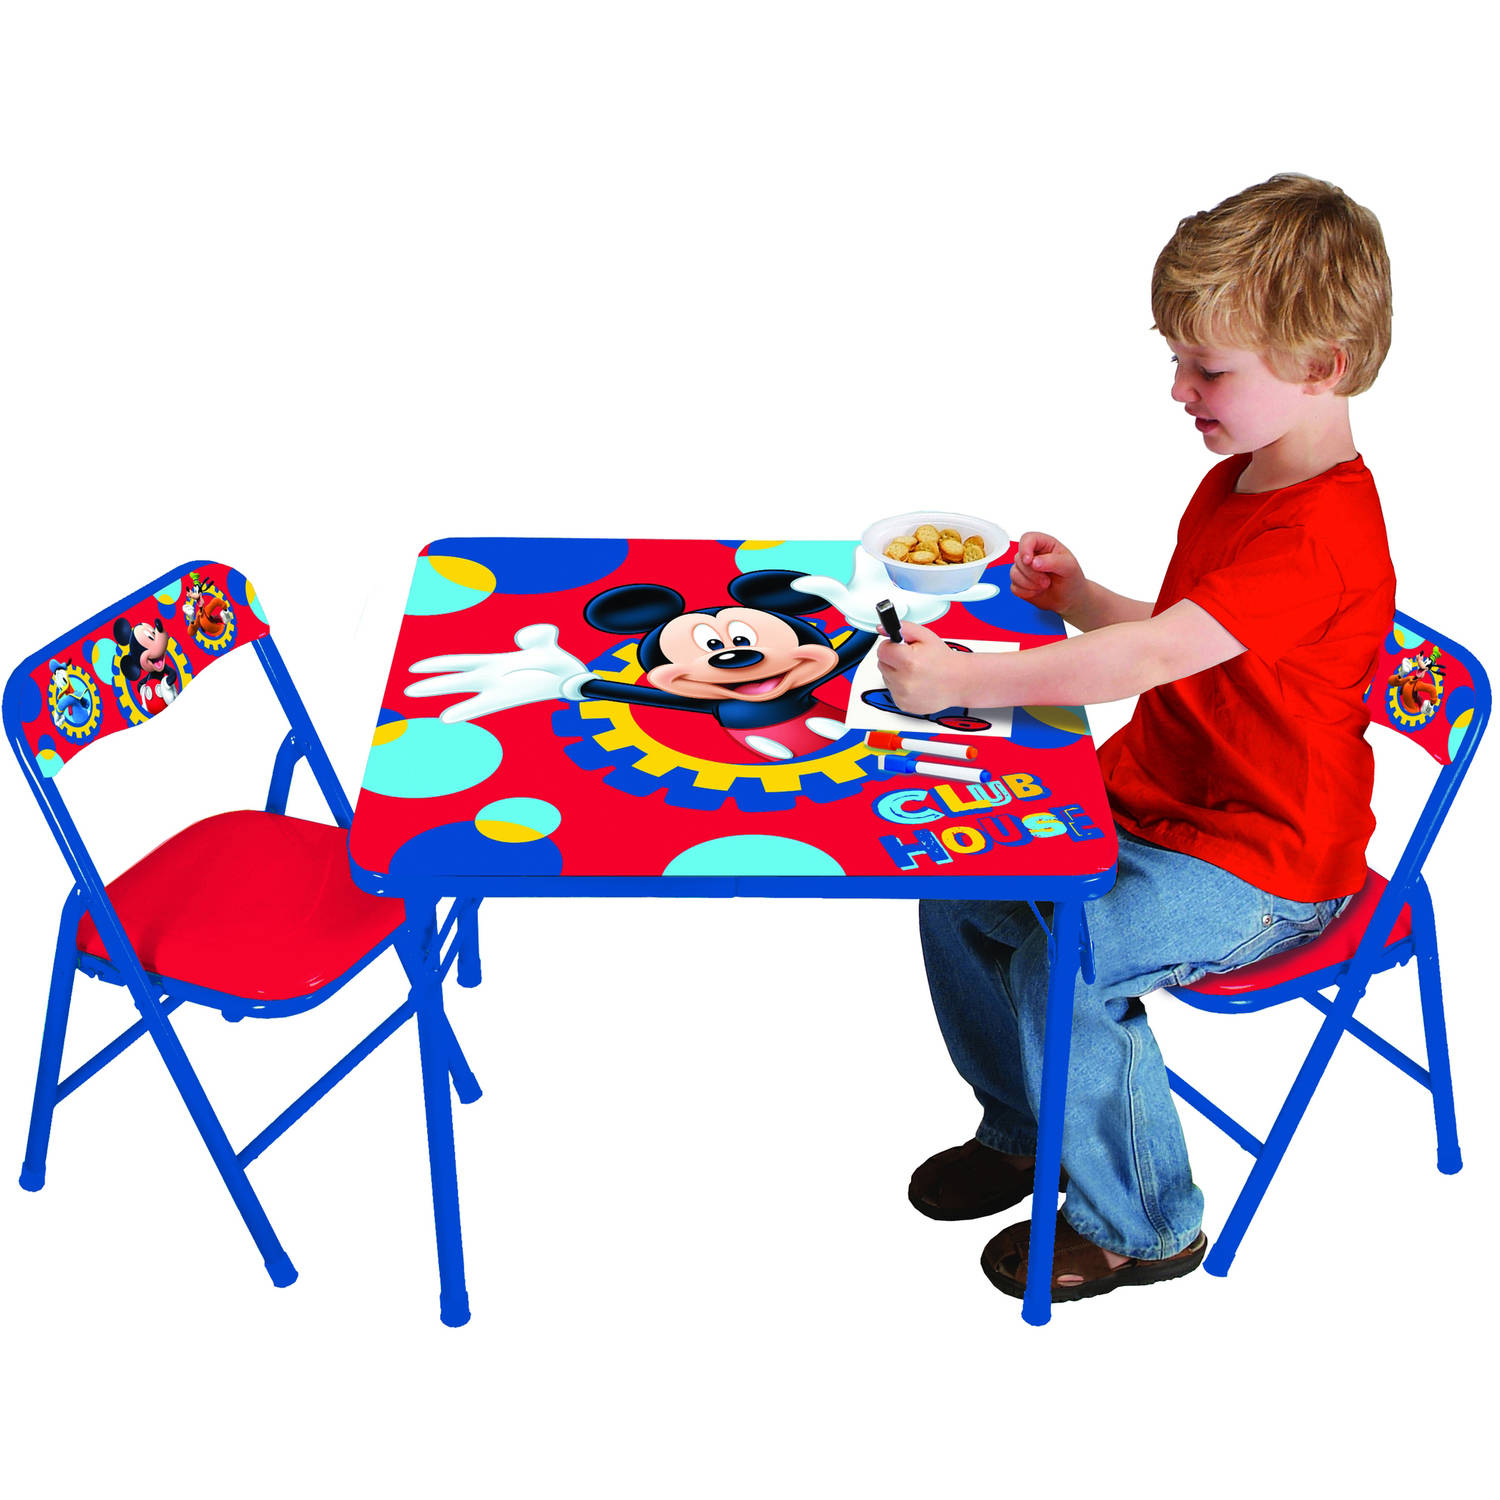 Disney Mickey Mouse Playground Pals Activity Table Set - Walmart.com